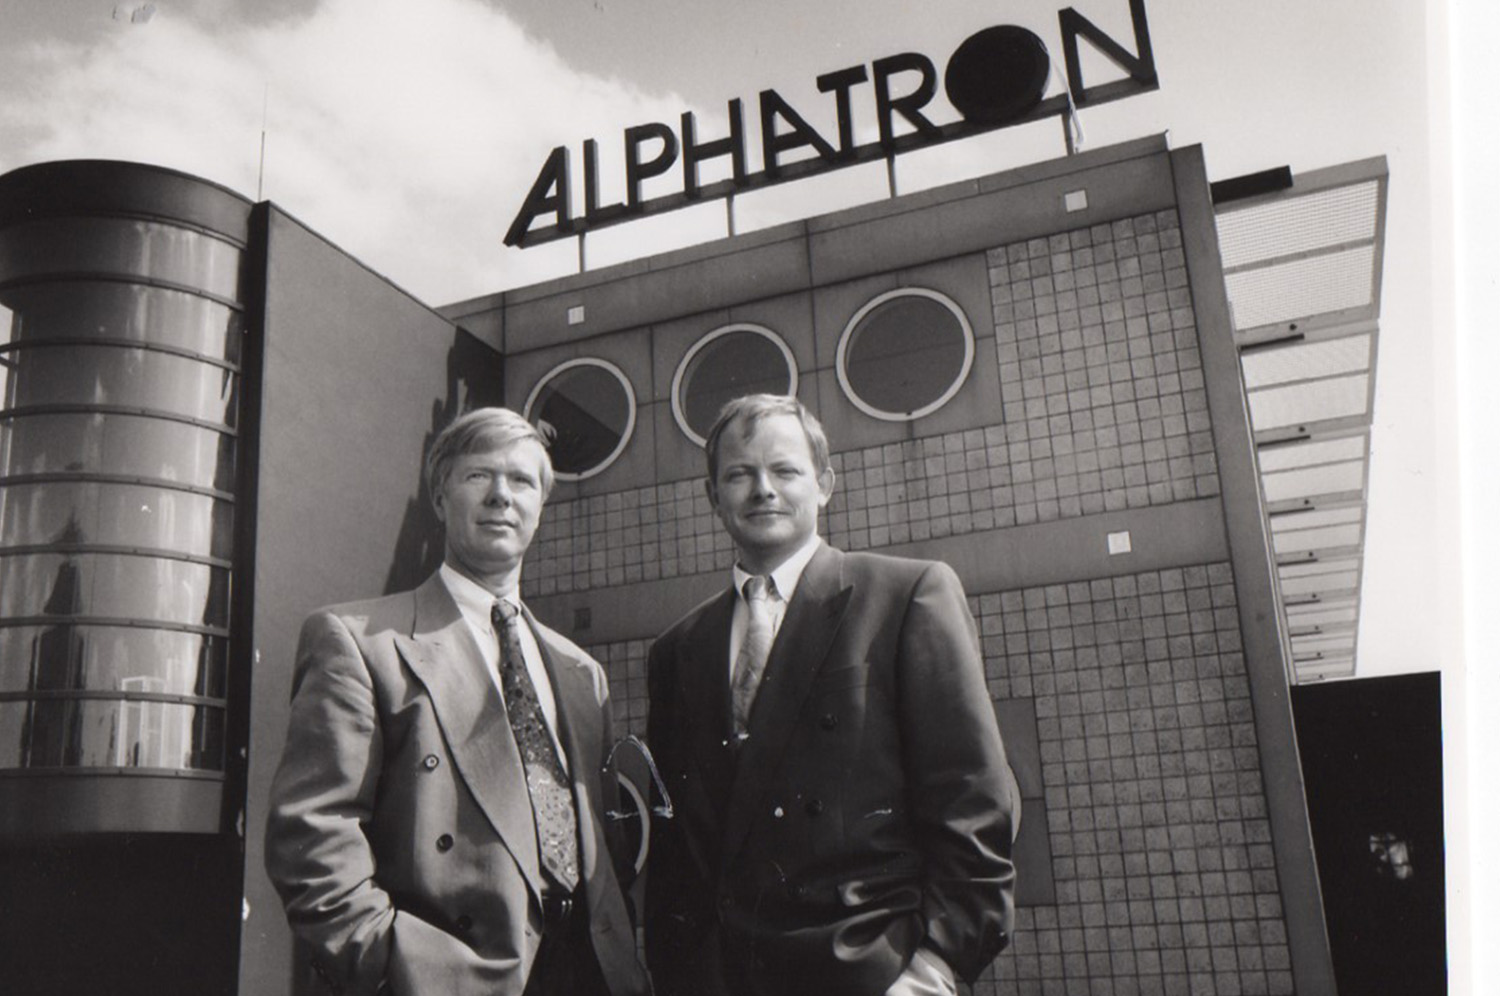 Dick Slingerland (left) and Luuk Vroombout (right)